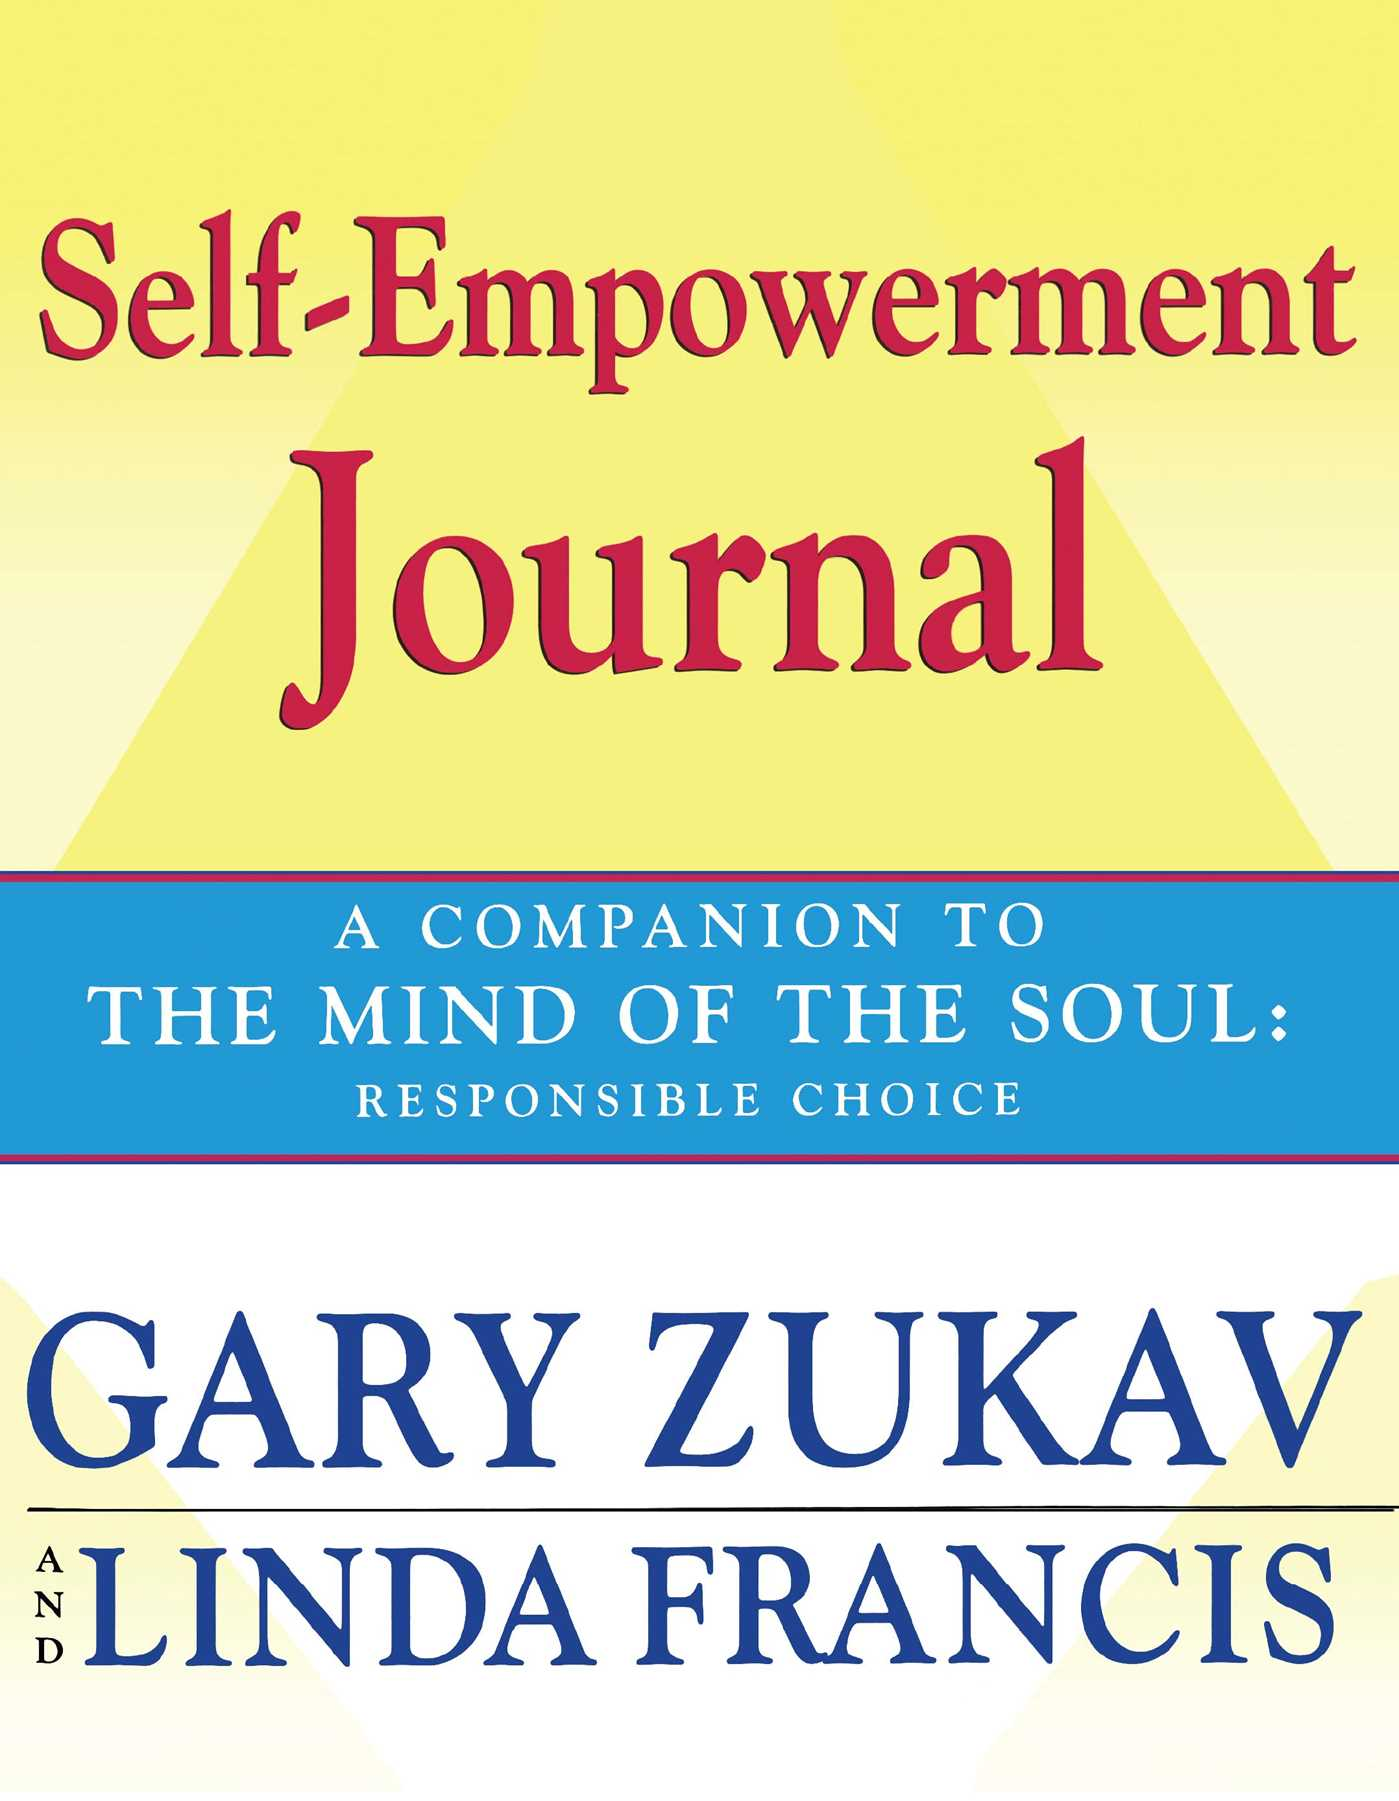 Self empowerment journal 9780743257466 hr